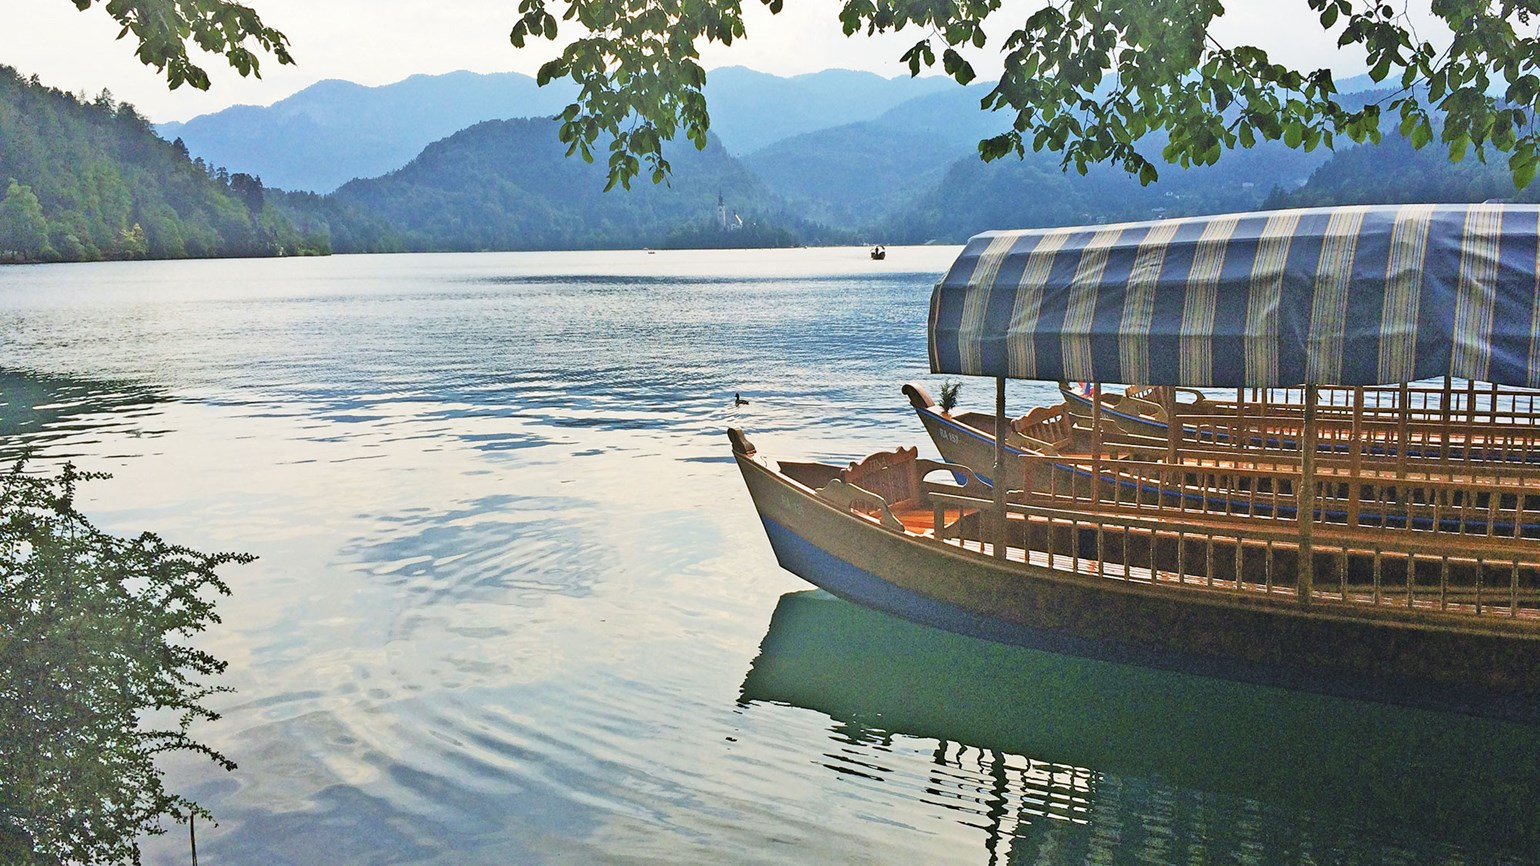 In Bled, fairy tales can come to life